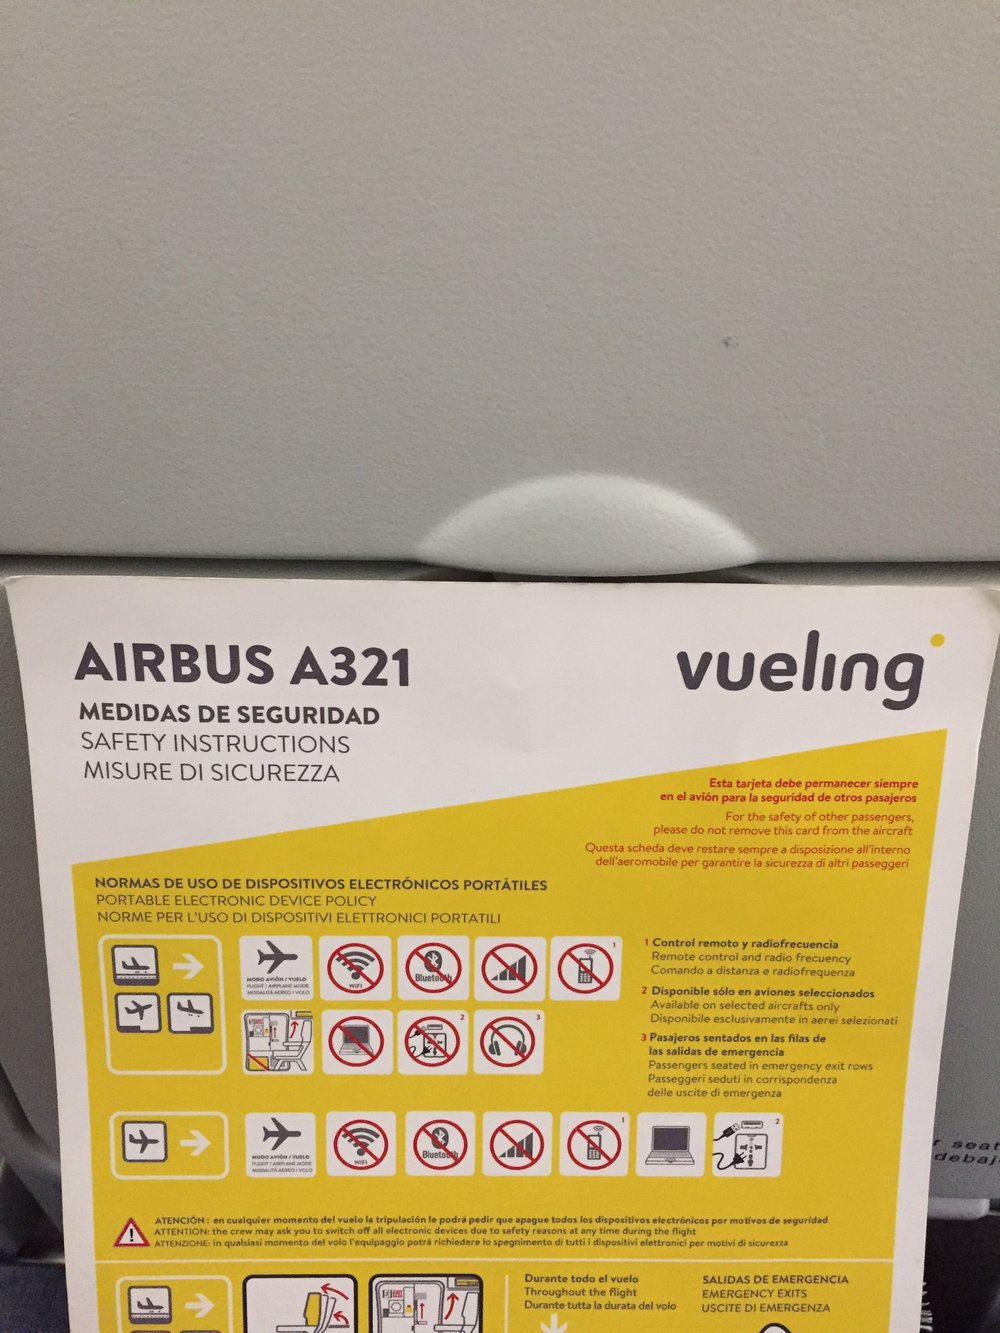 Despite being a regular Vueling customer, first time for me on one of its A321s